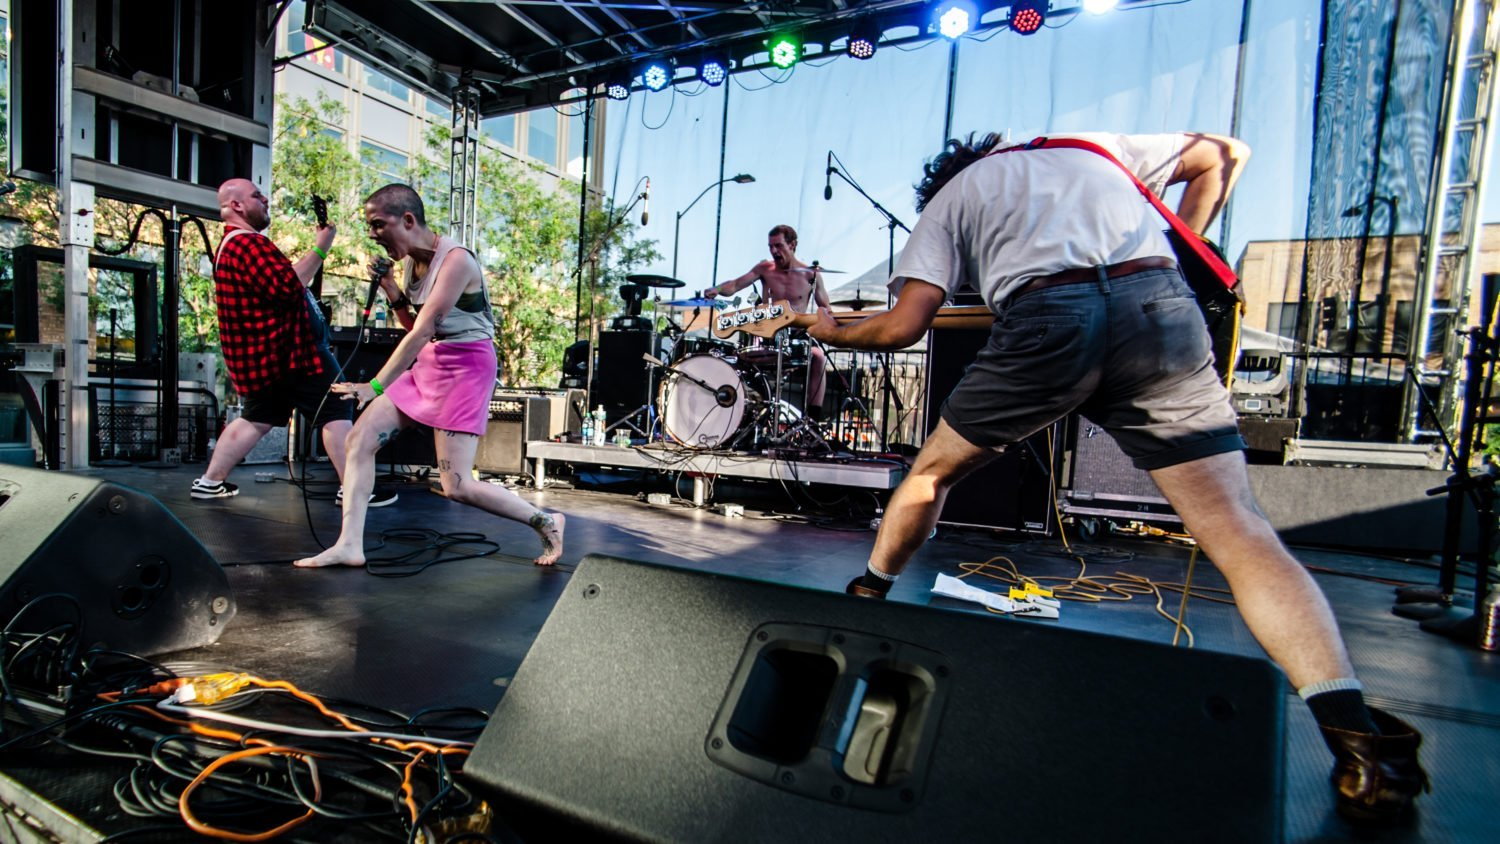 Closet Witch performing at 80/35 Music Festival 2018 in Des Moines, Iowa